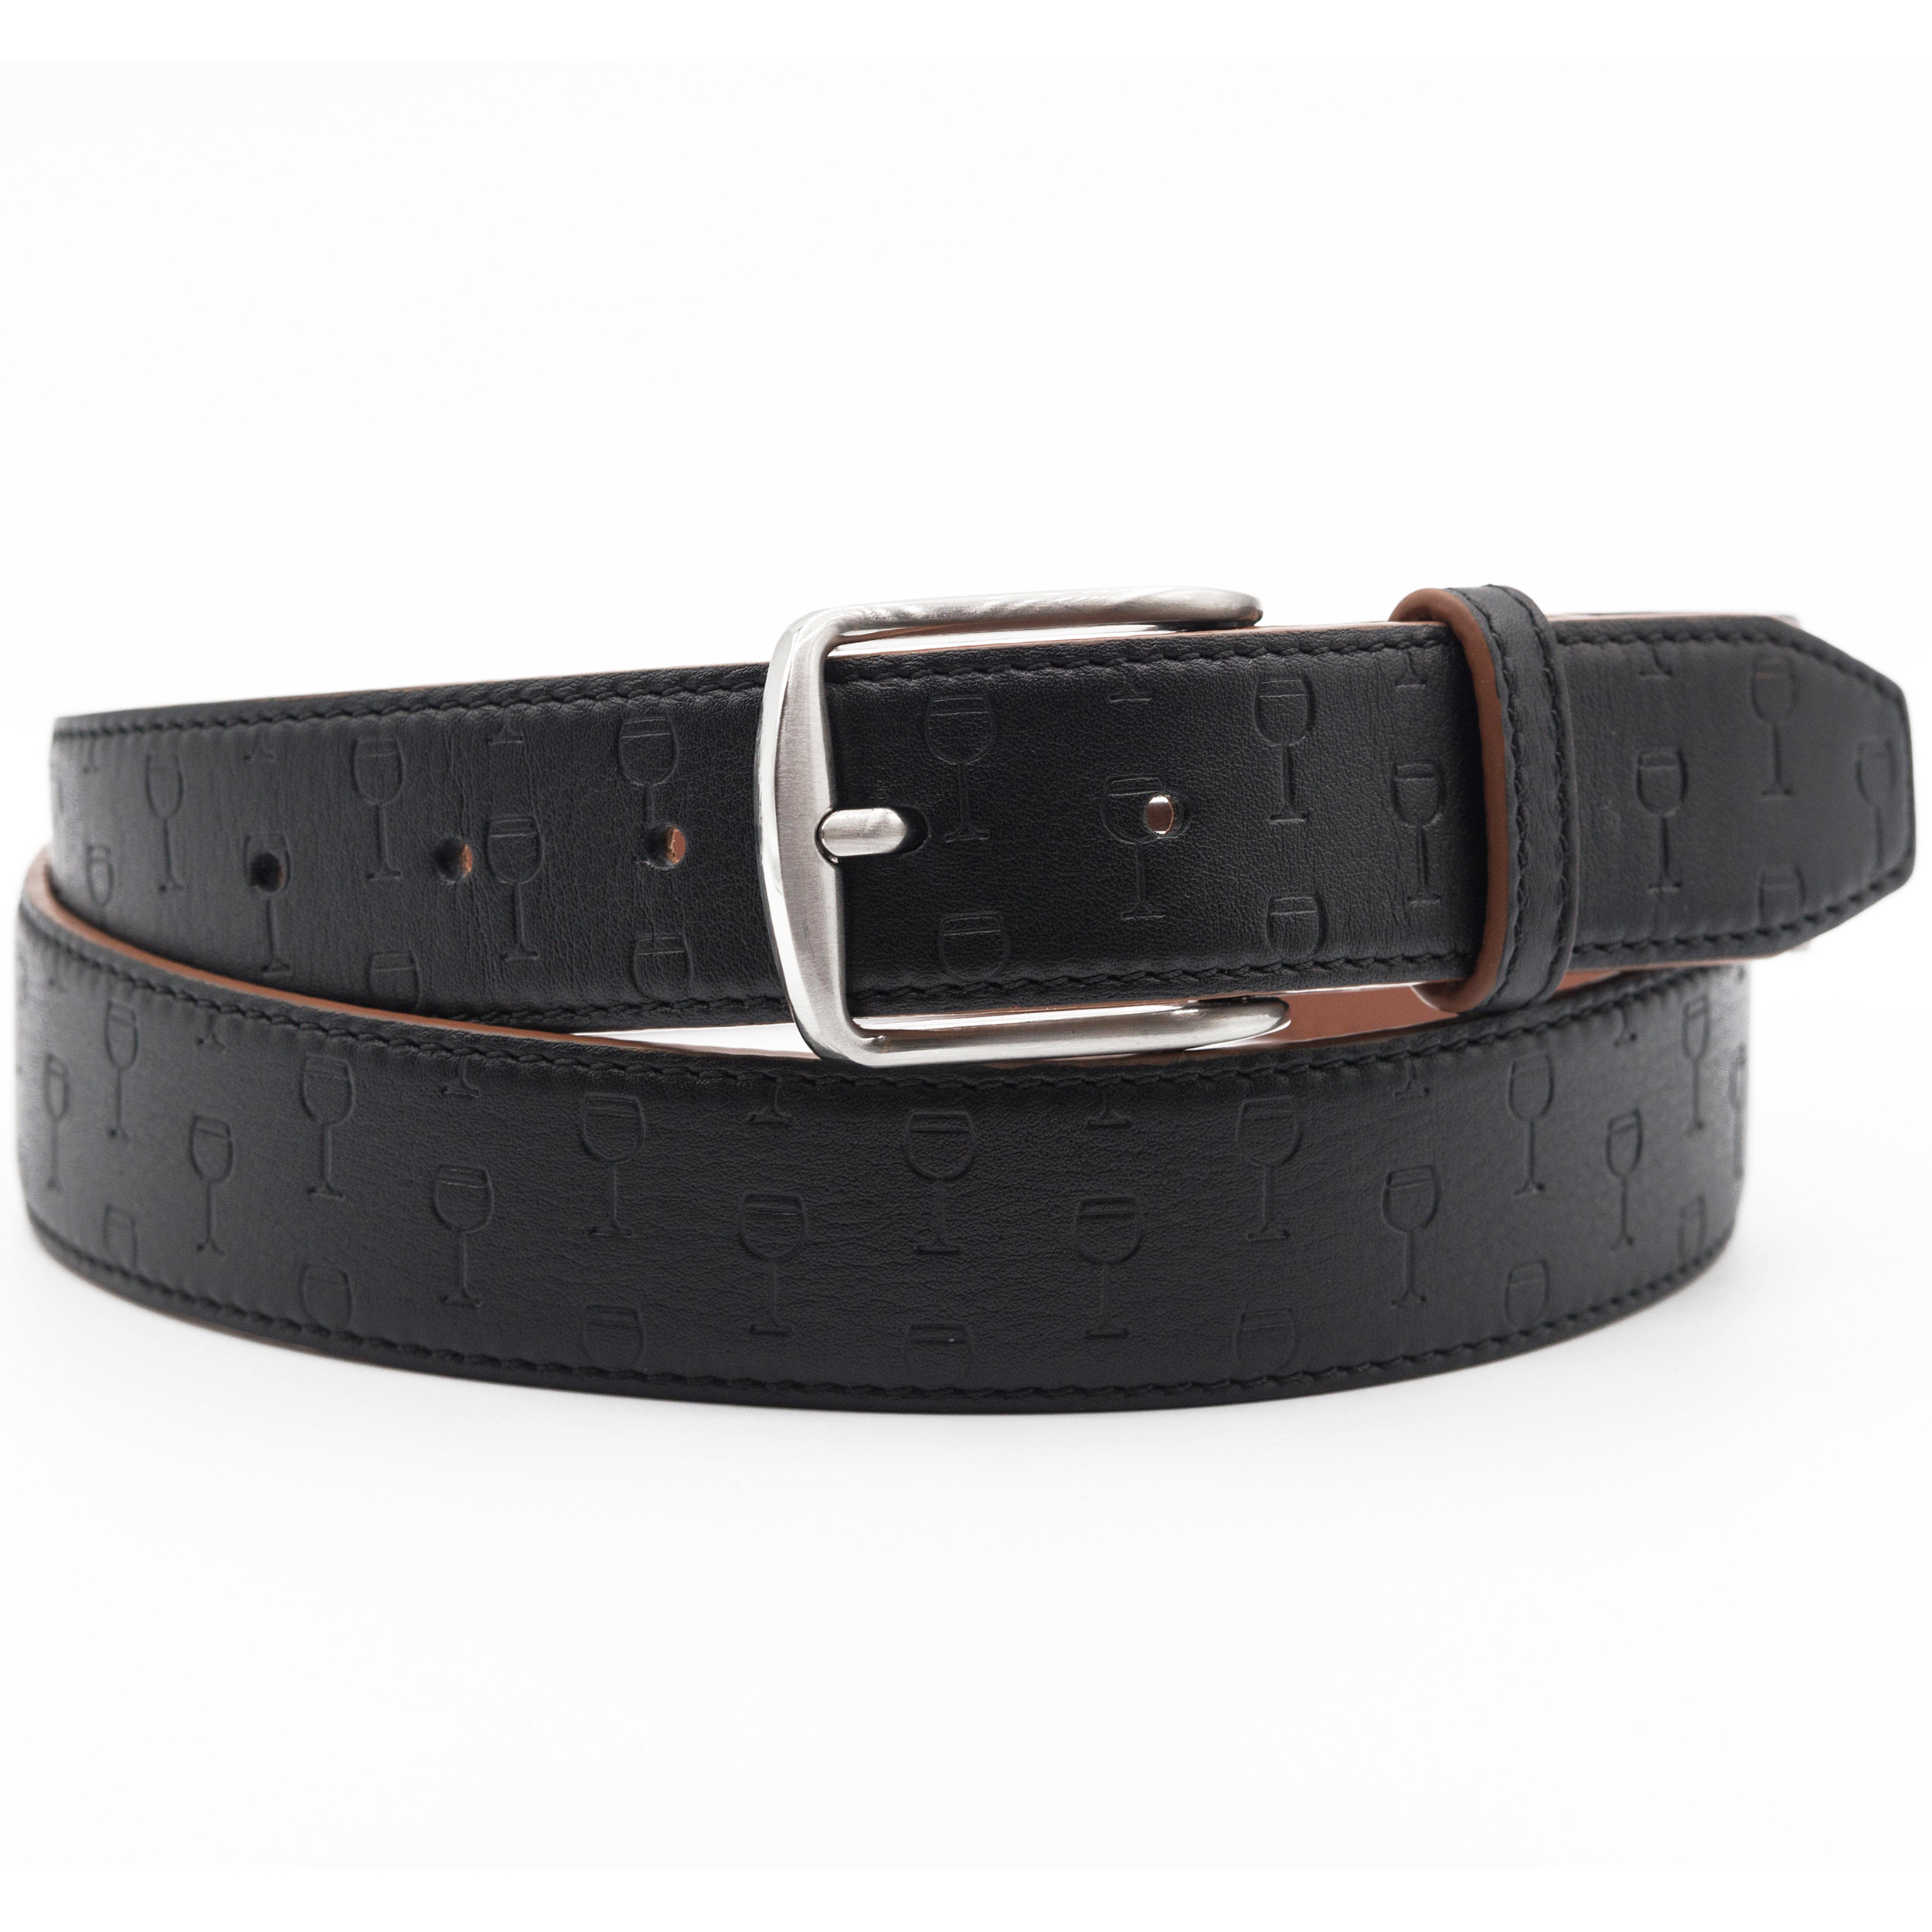 OPTIMISM - Mens Leather Belt with Glass of Wine